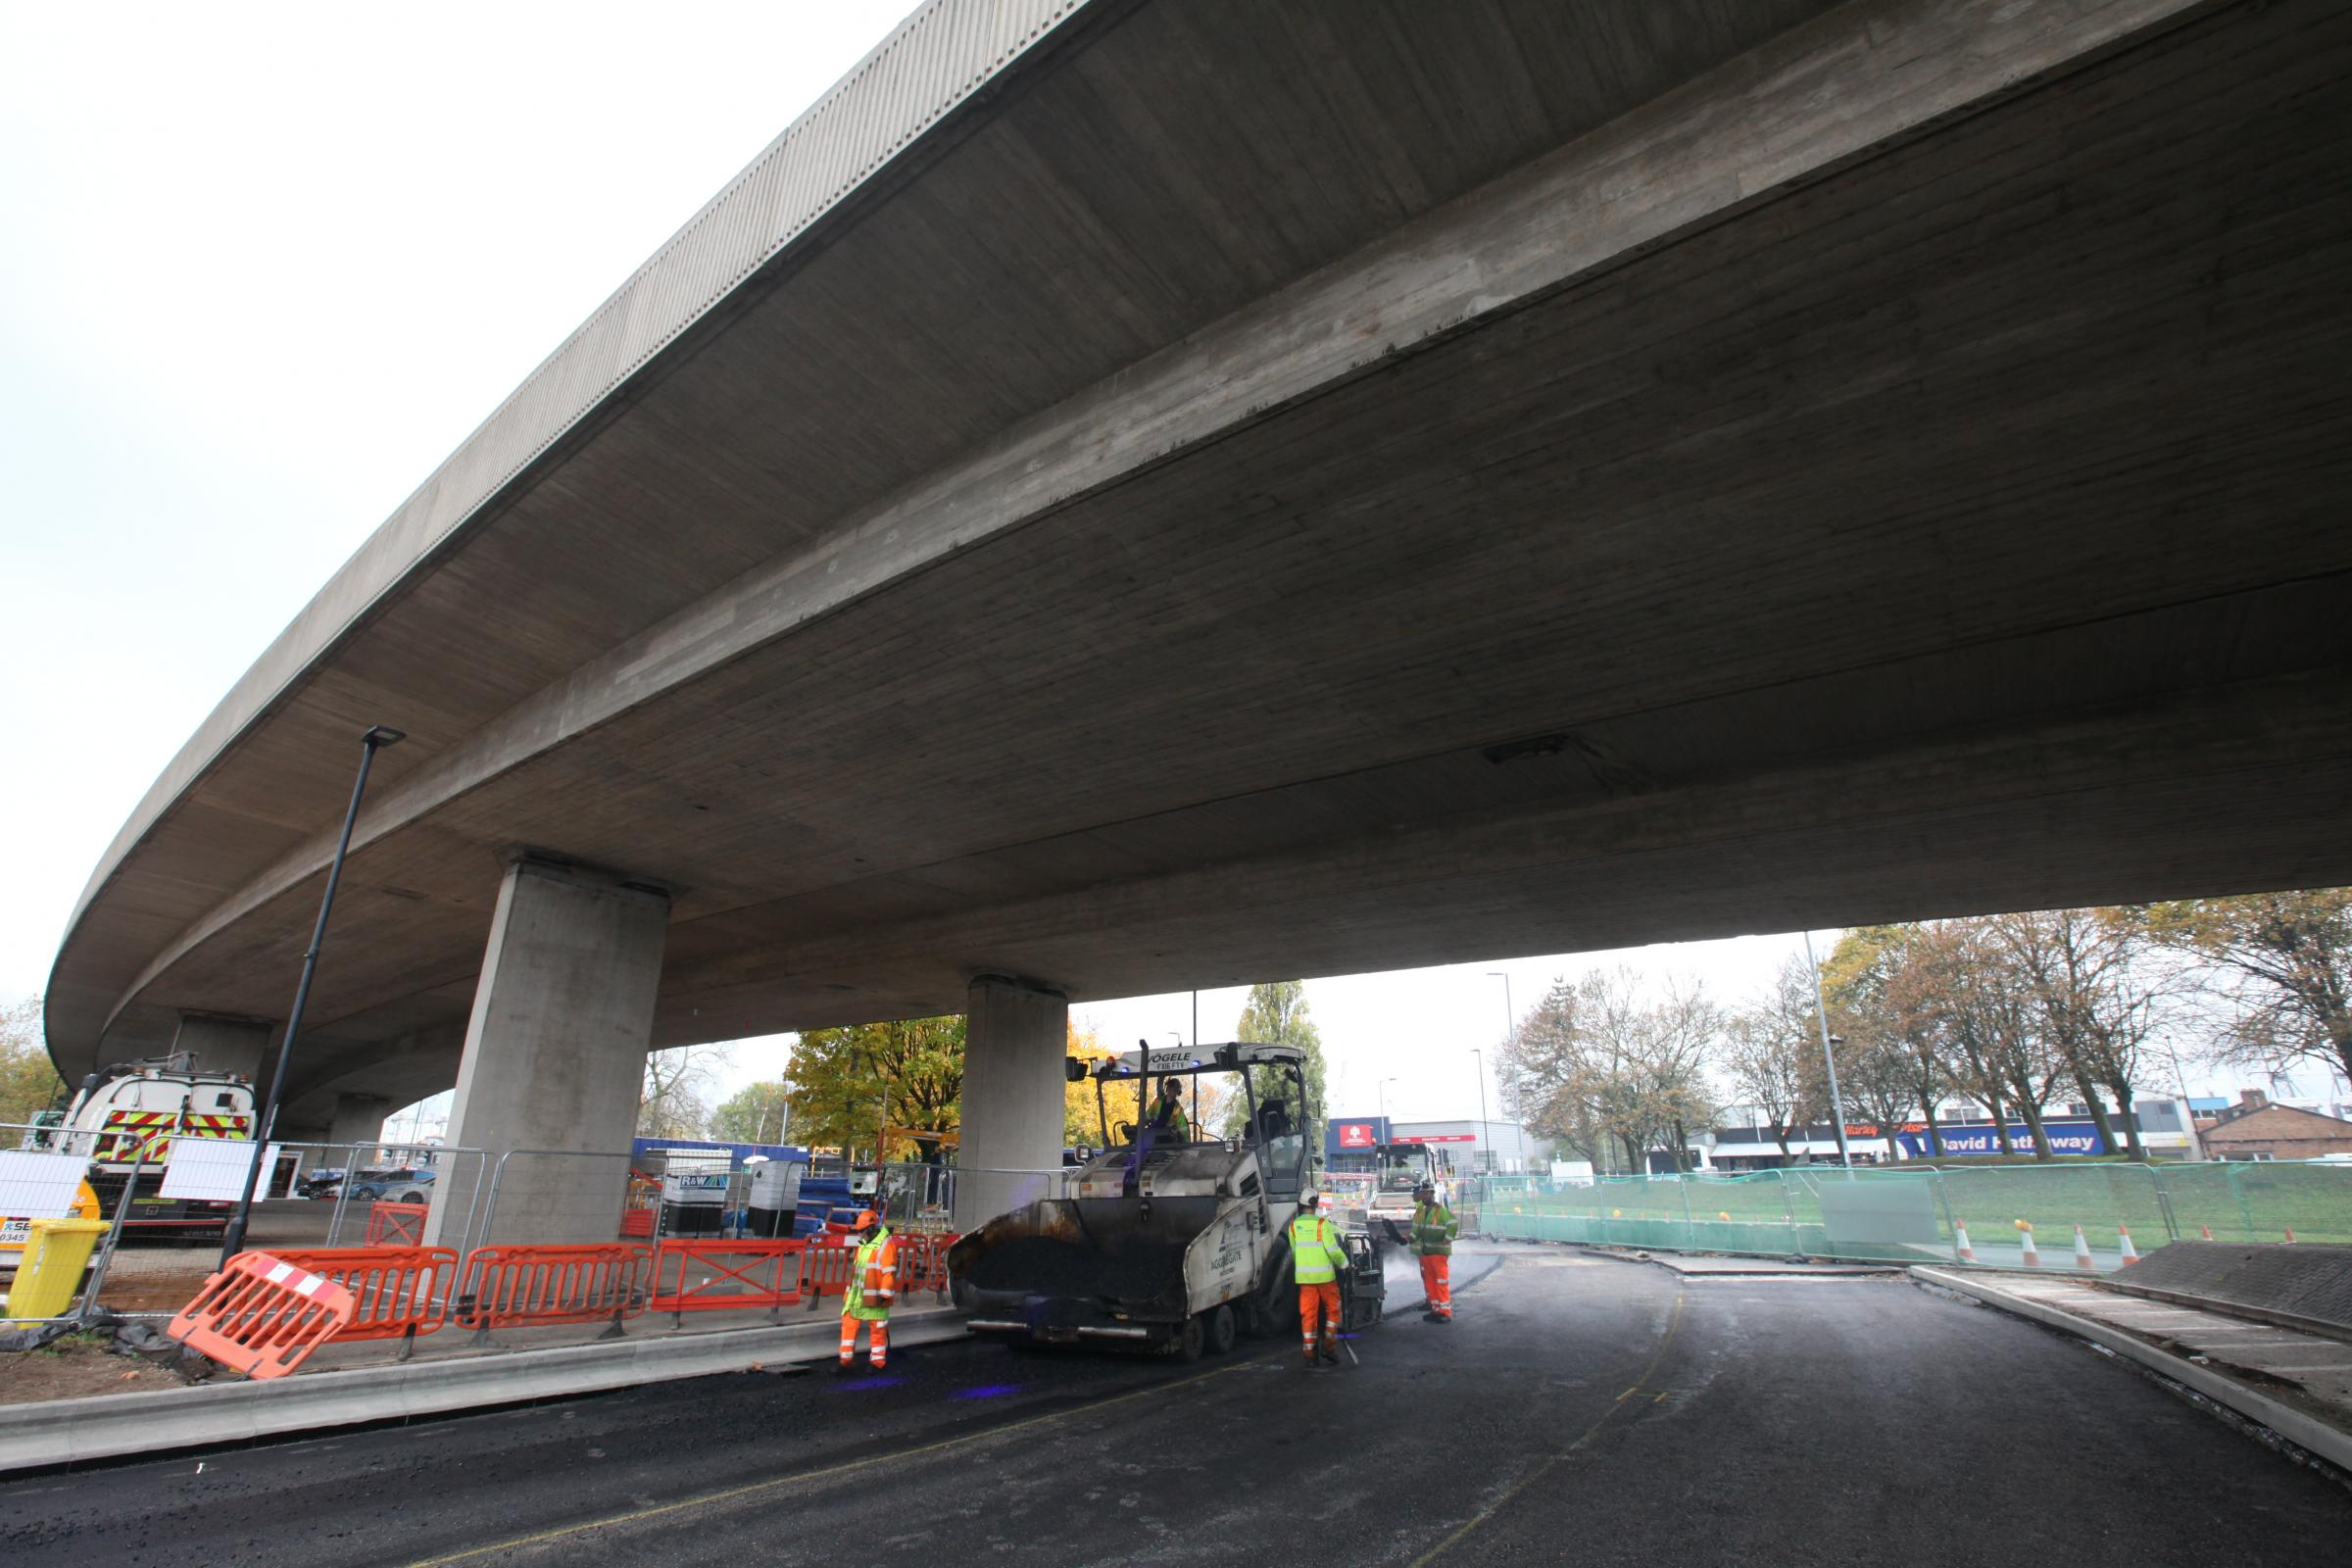 Millbrook roundabout as it reaches end of phase 1 in £8.3m improvements